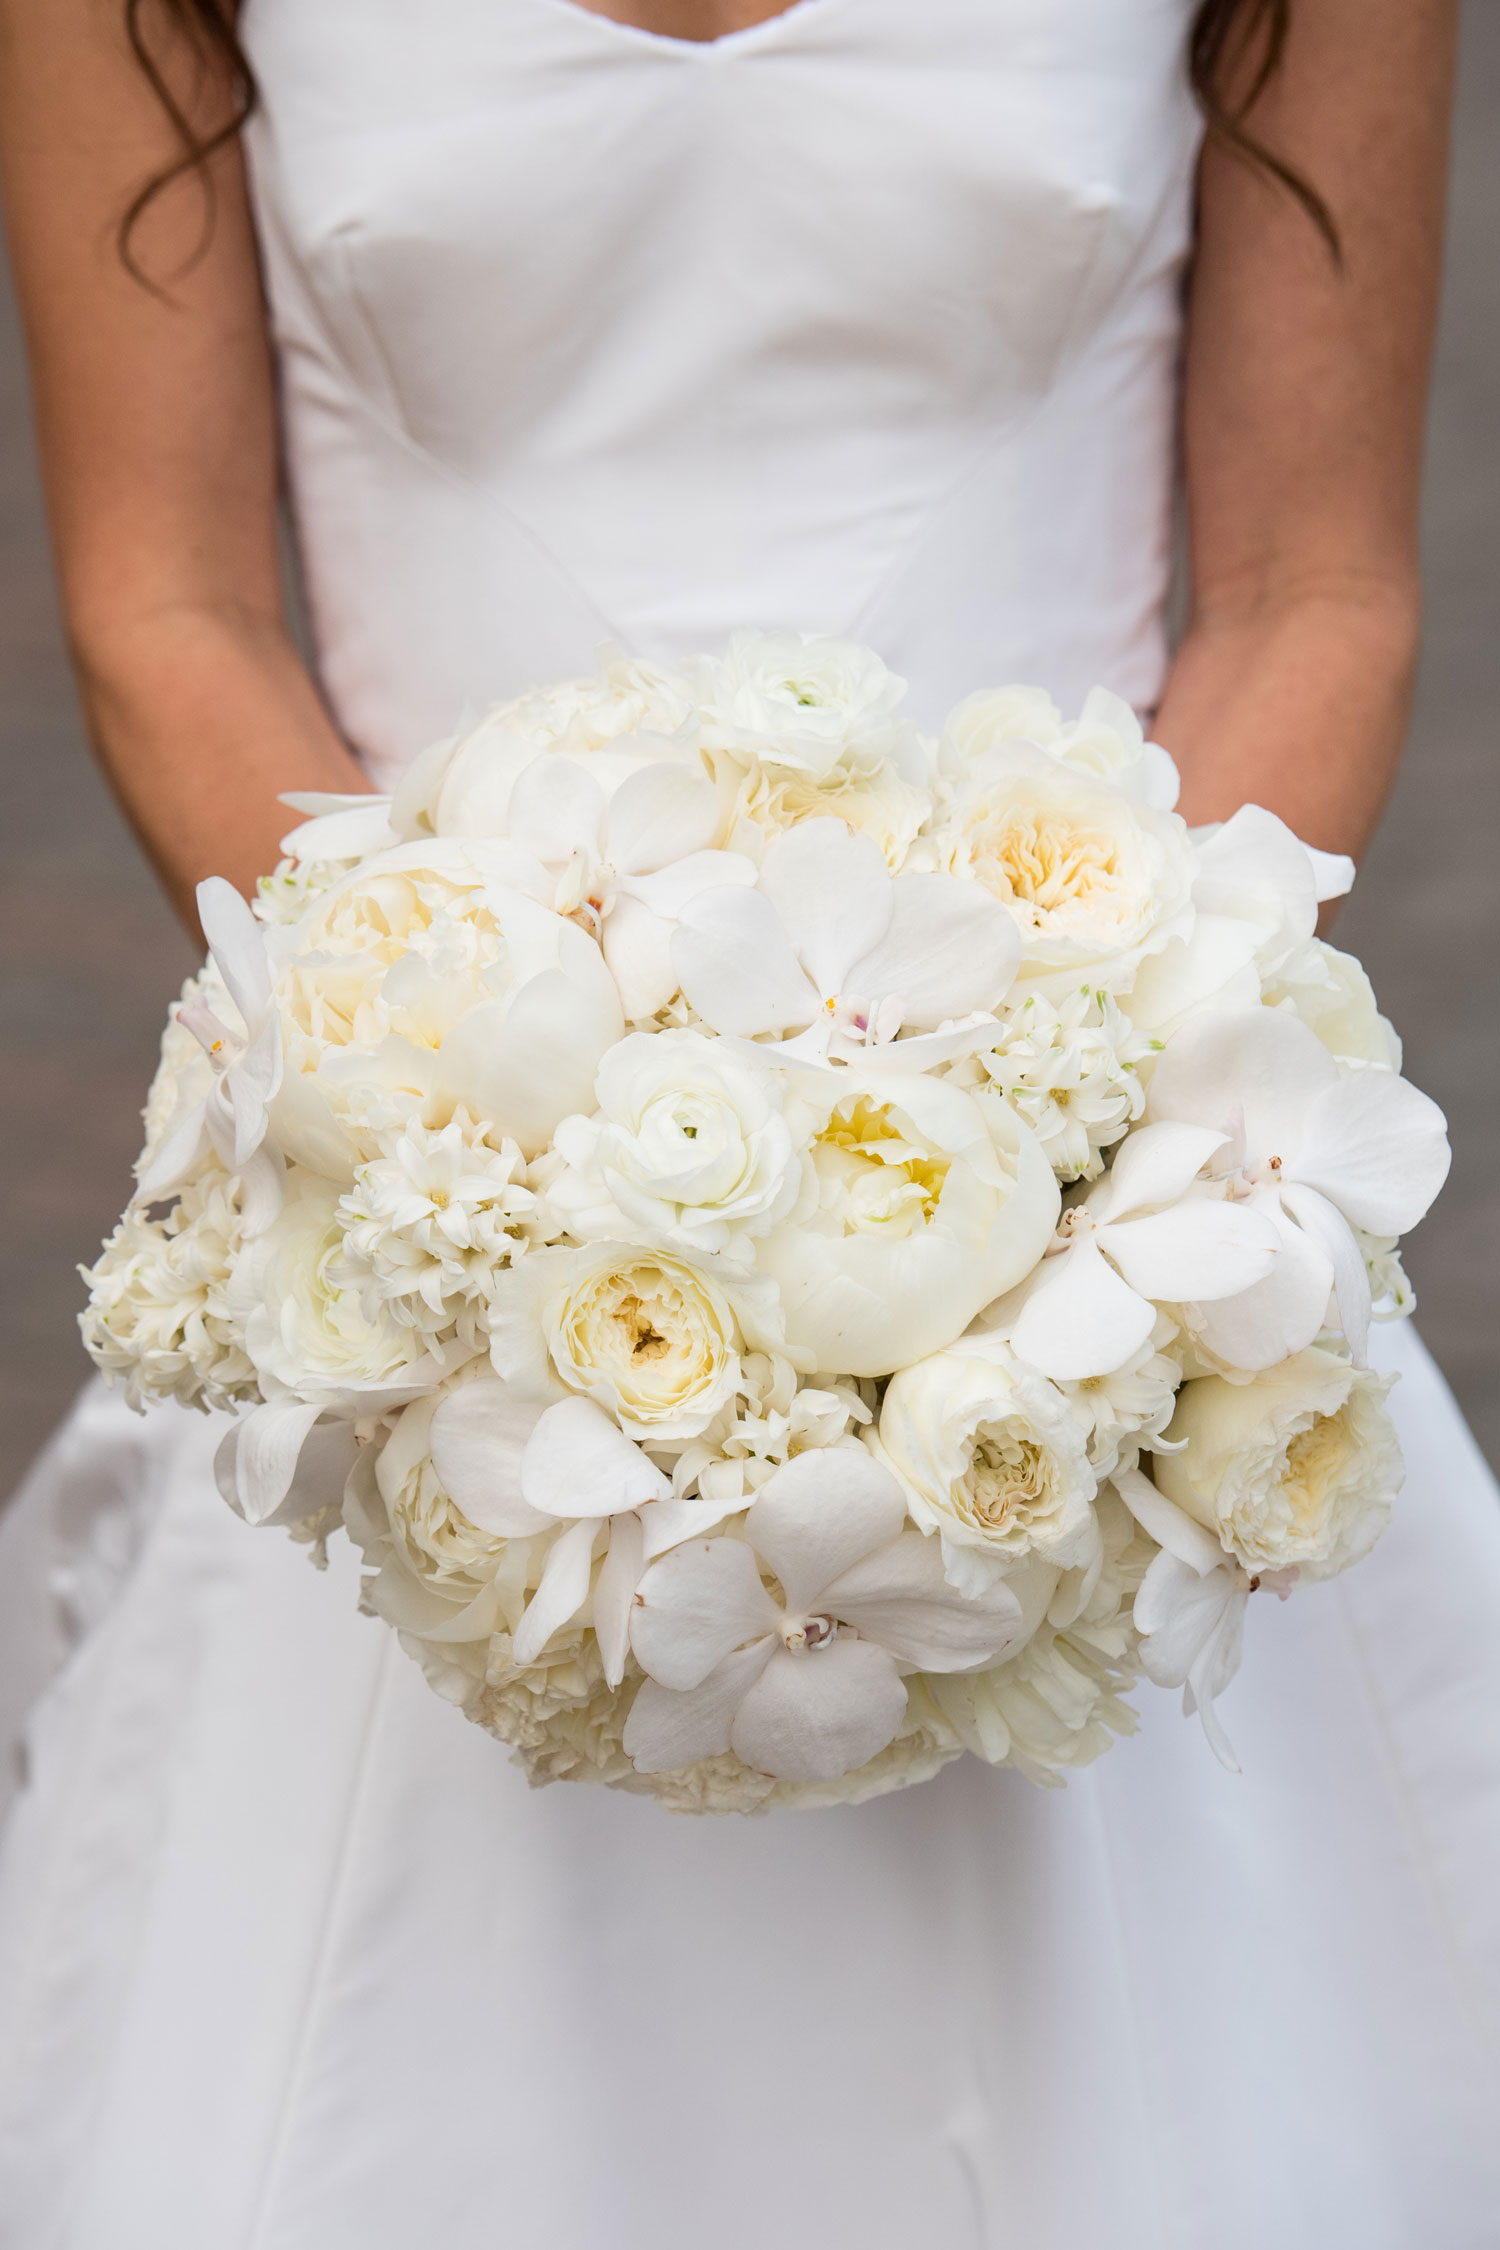 Bride holding all white bouquet with orchid rose flowers